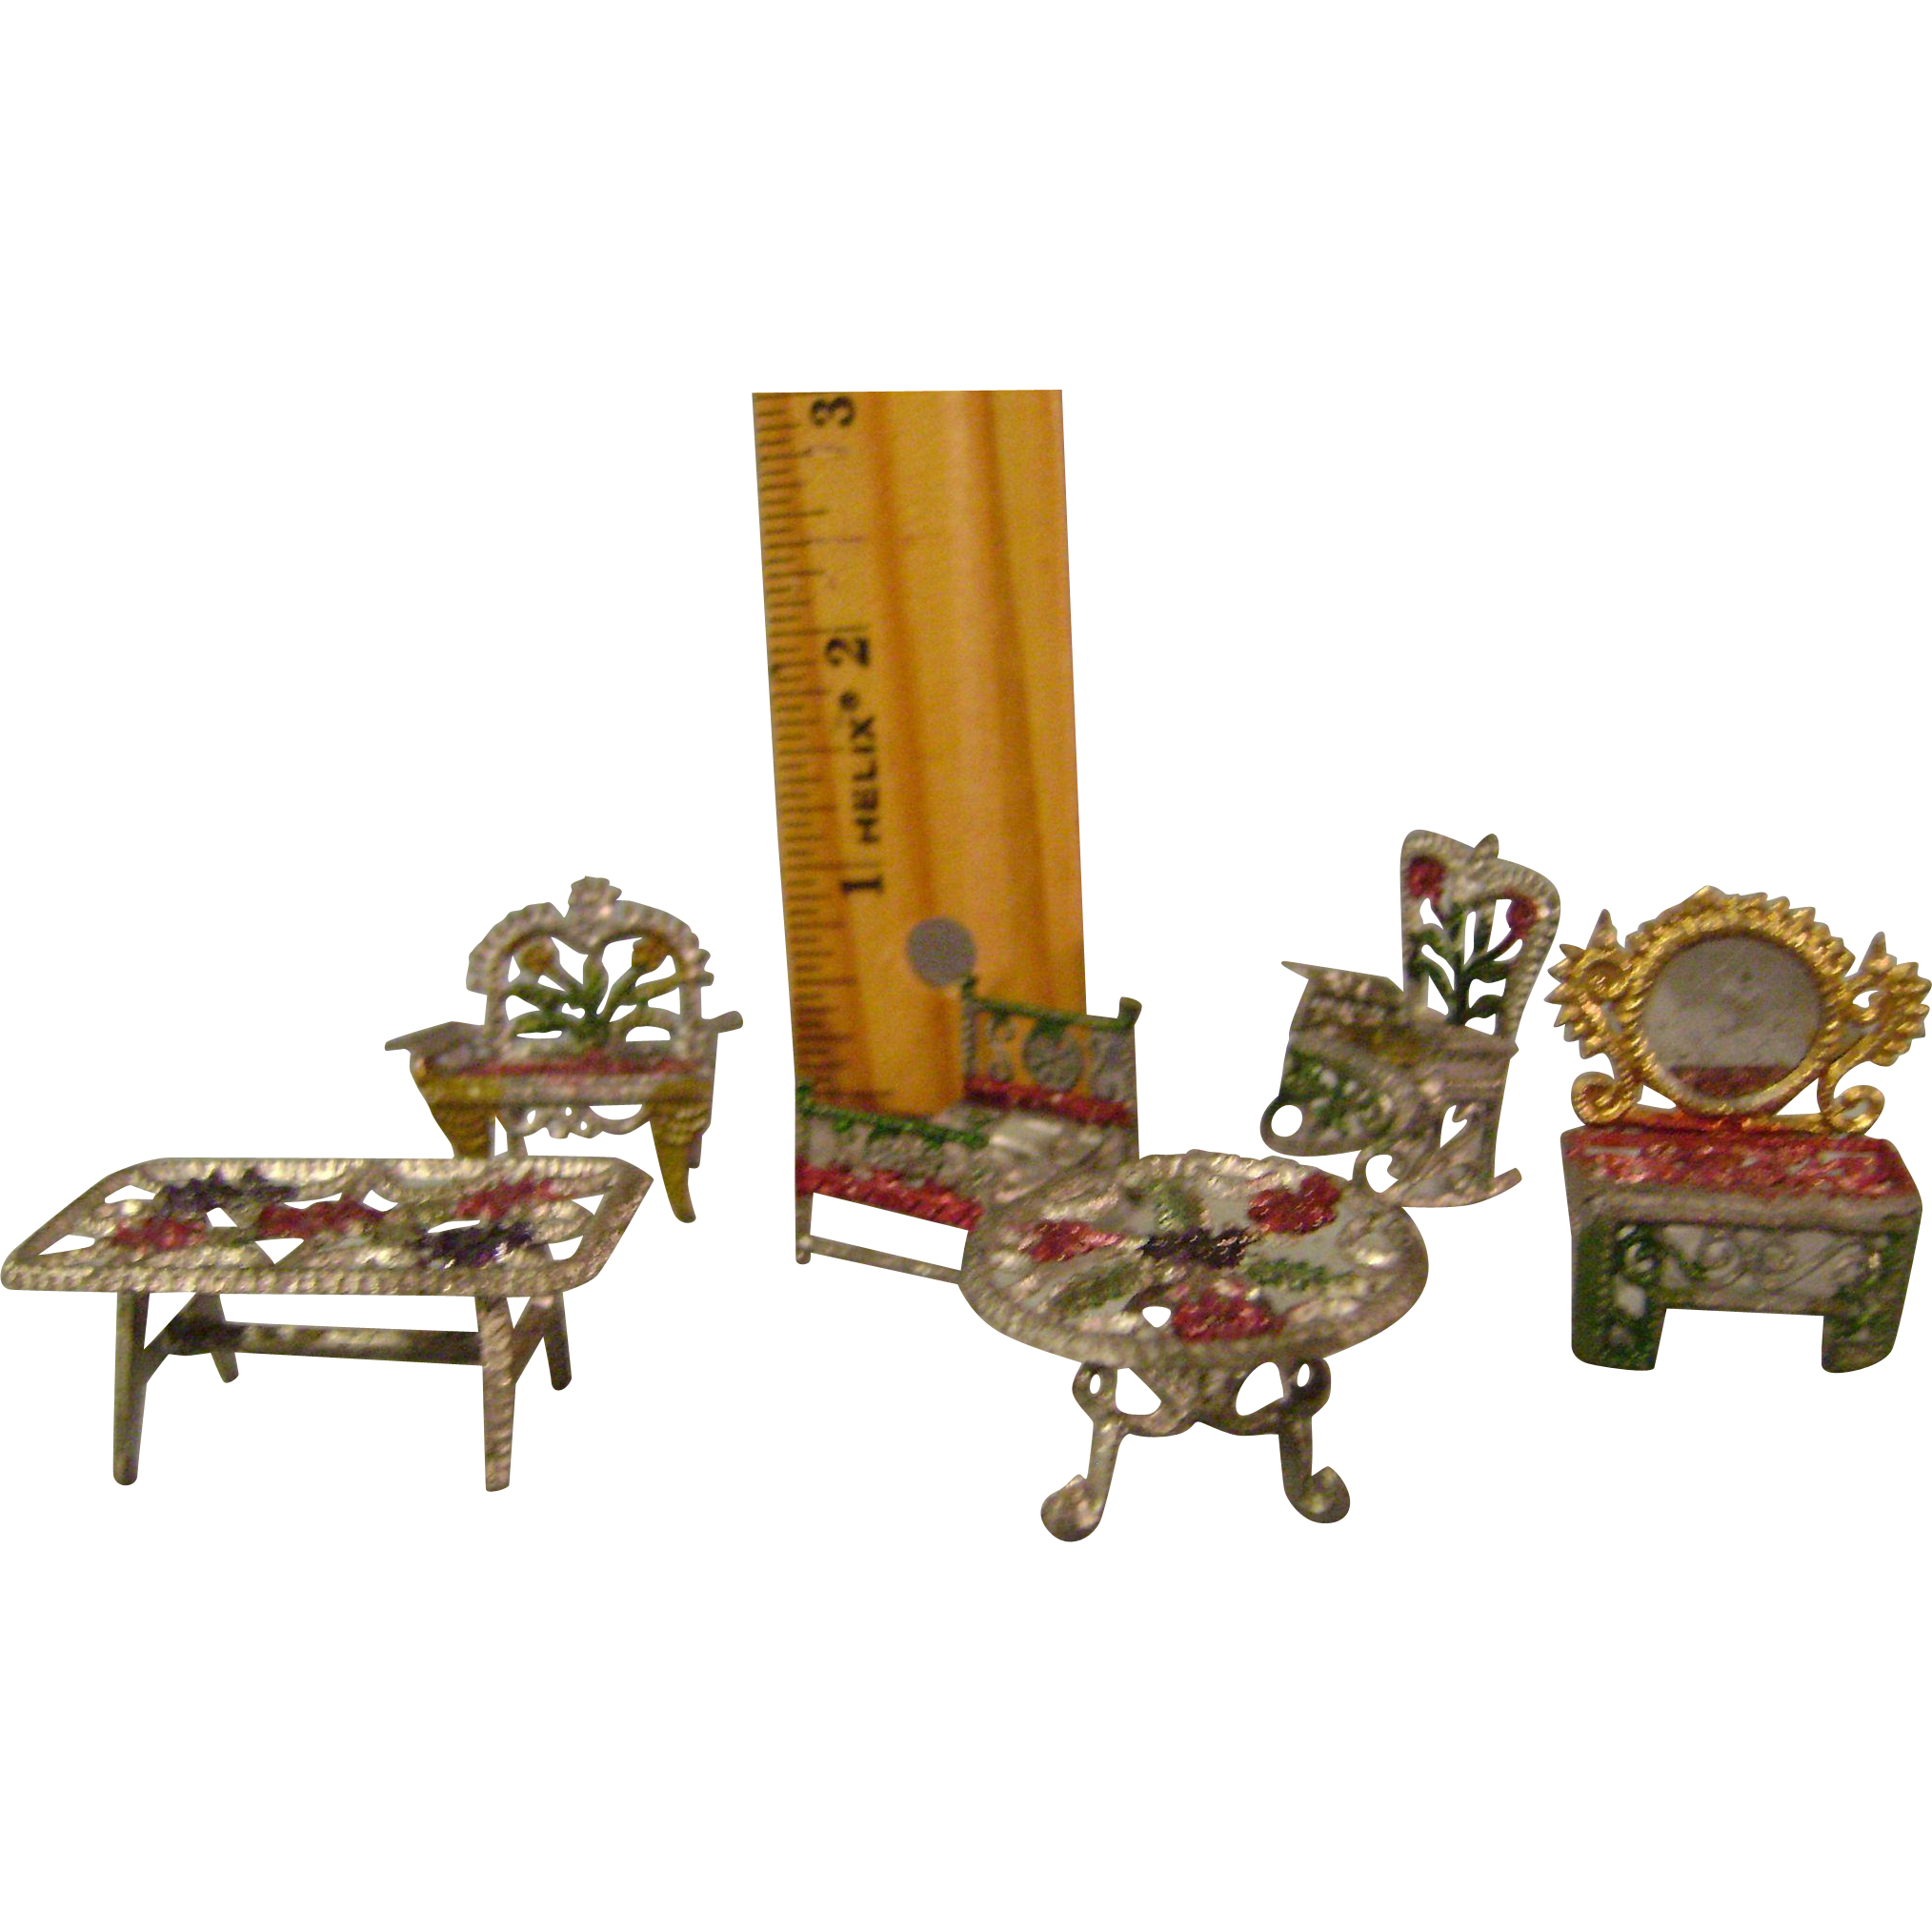 Tiny Metal Dollhouse Furniture